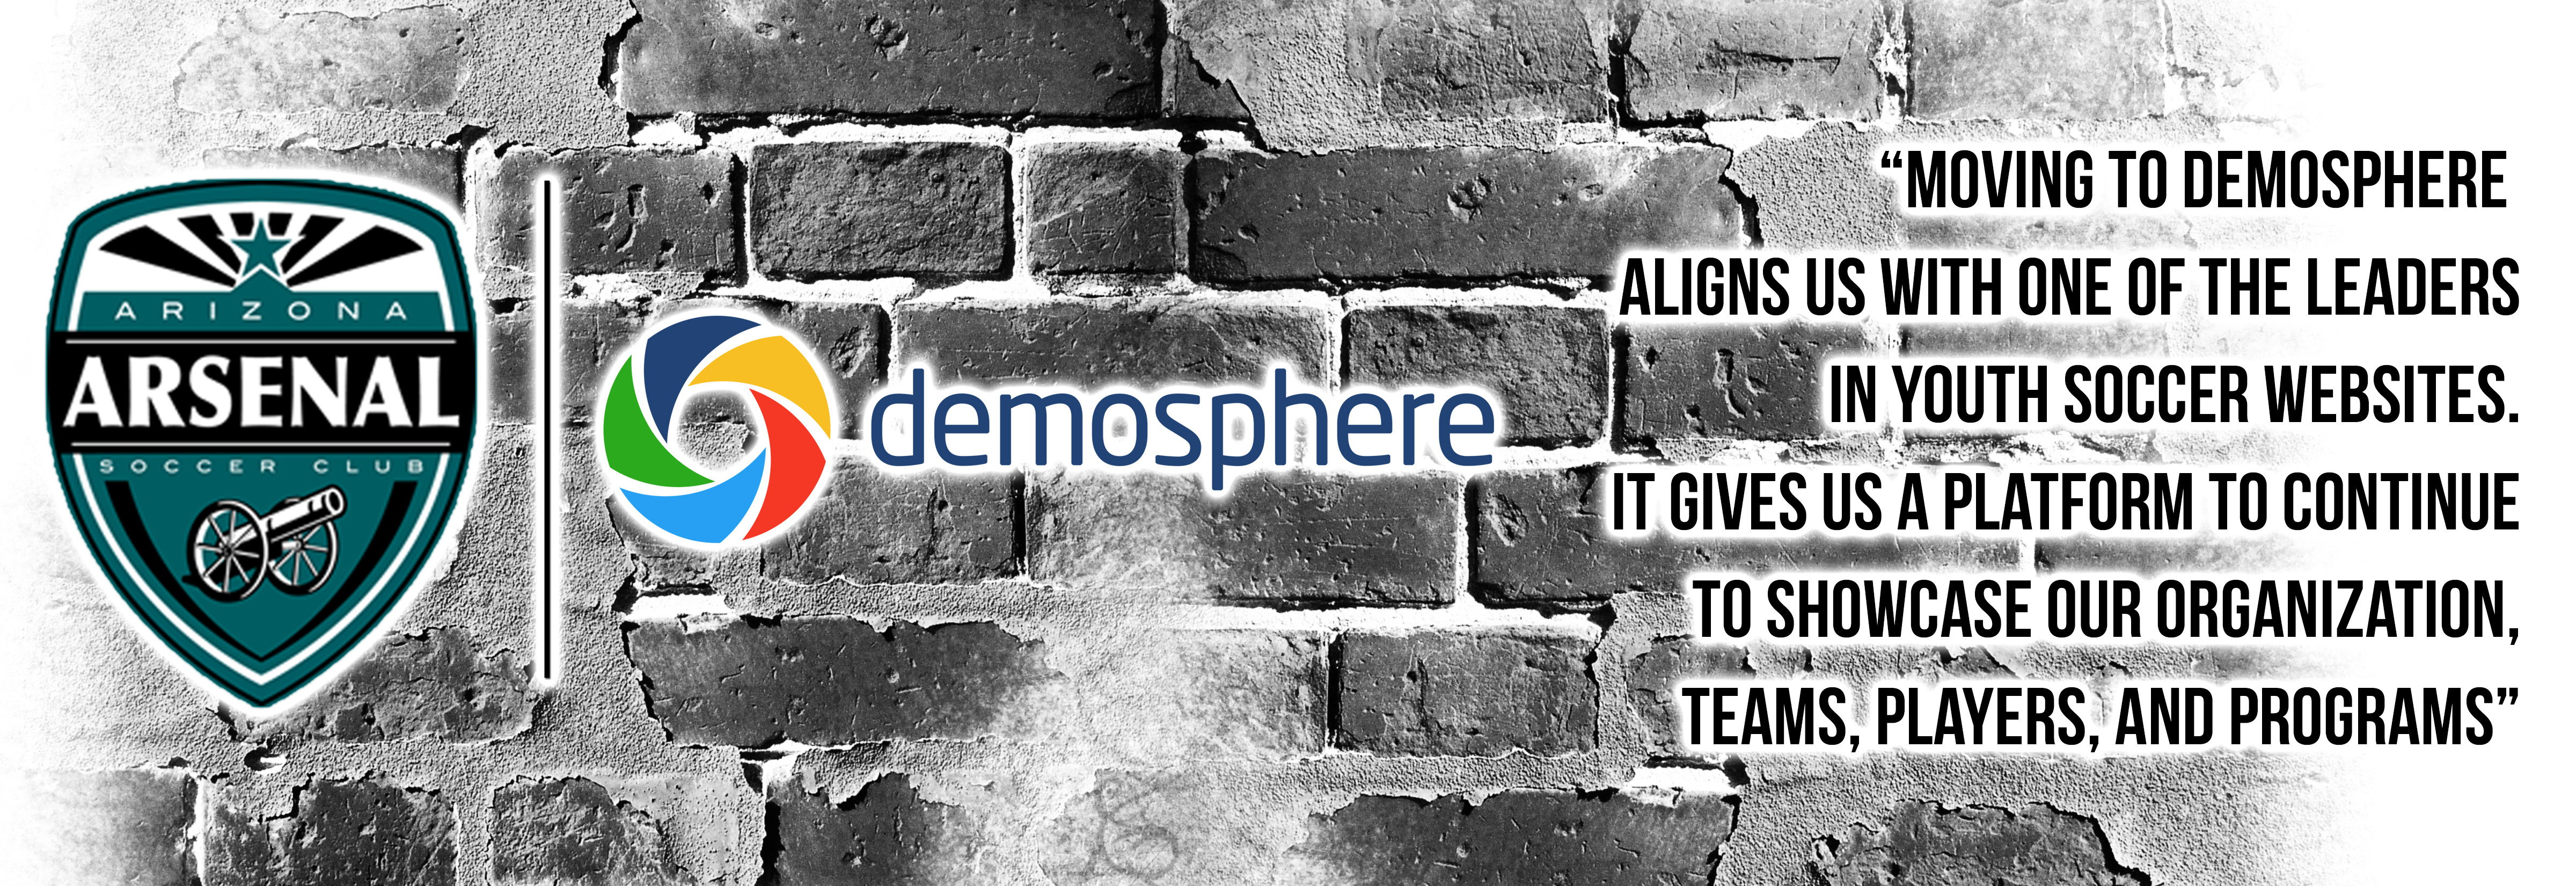 Demosphere Slider